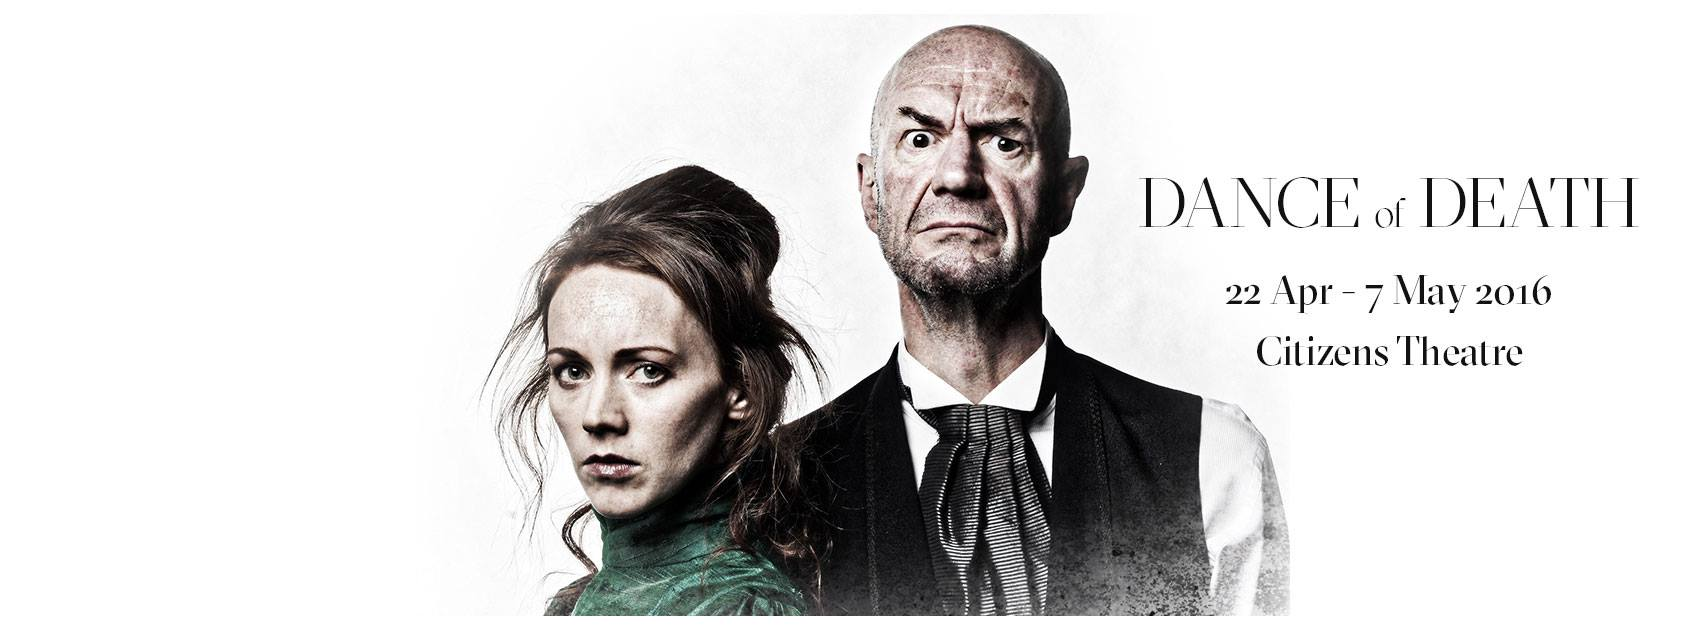 starring Lucianne McEvoy,Tam Dean Burns and Andy Clark (not pictured)